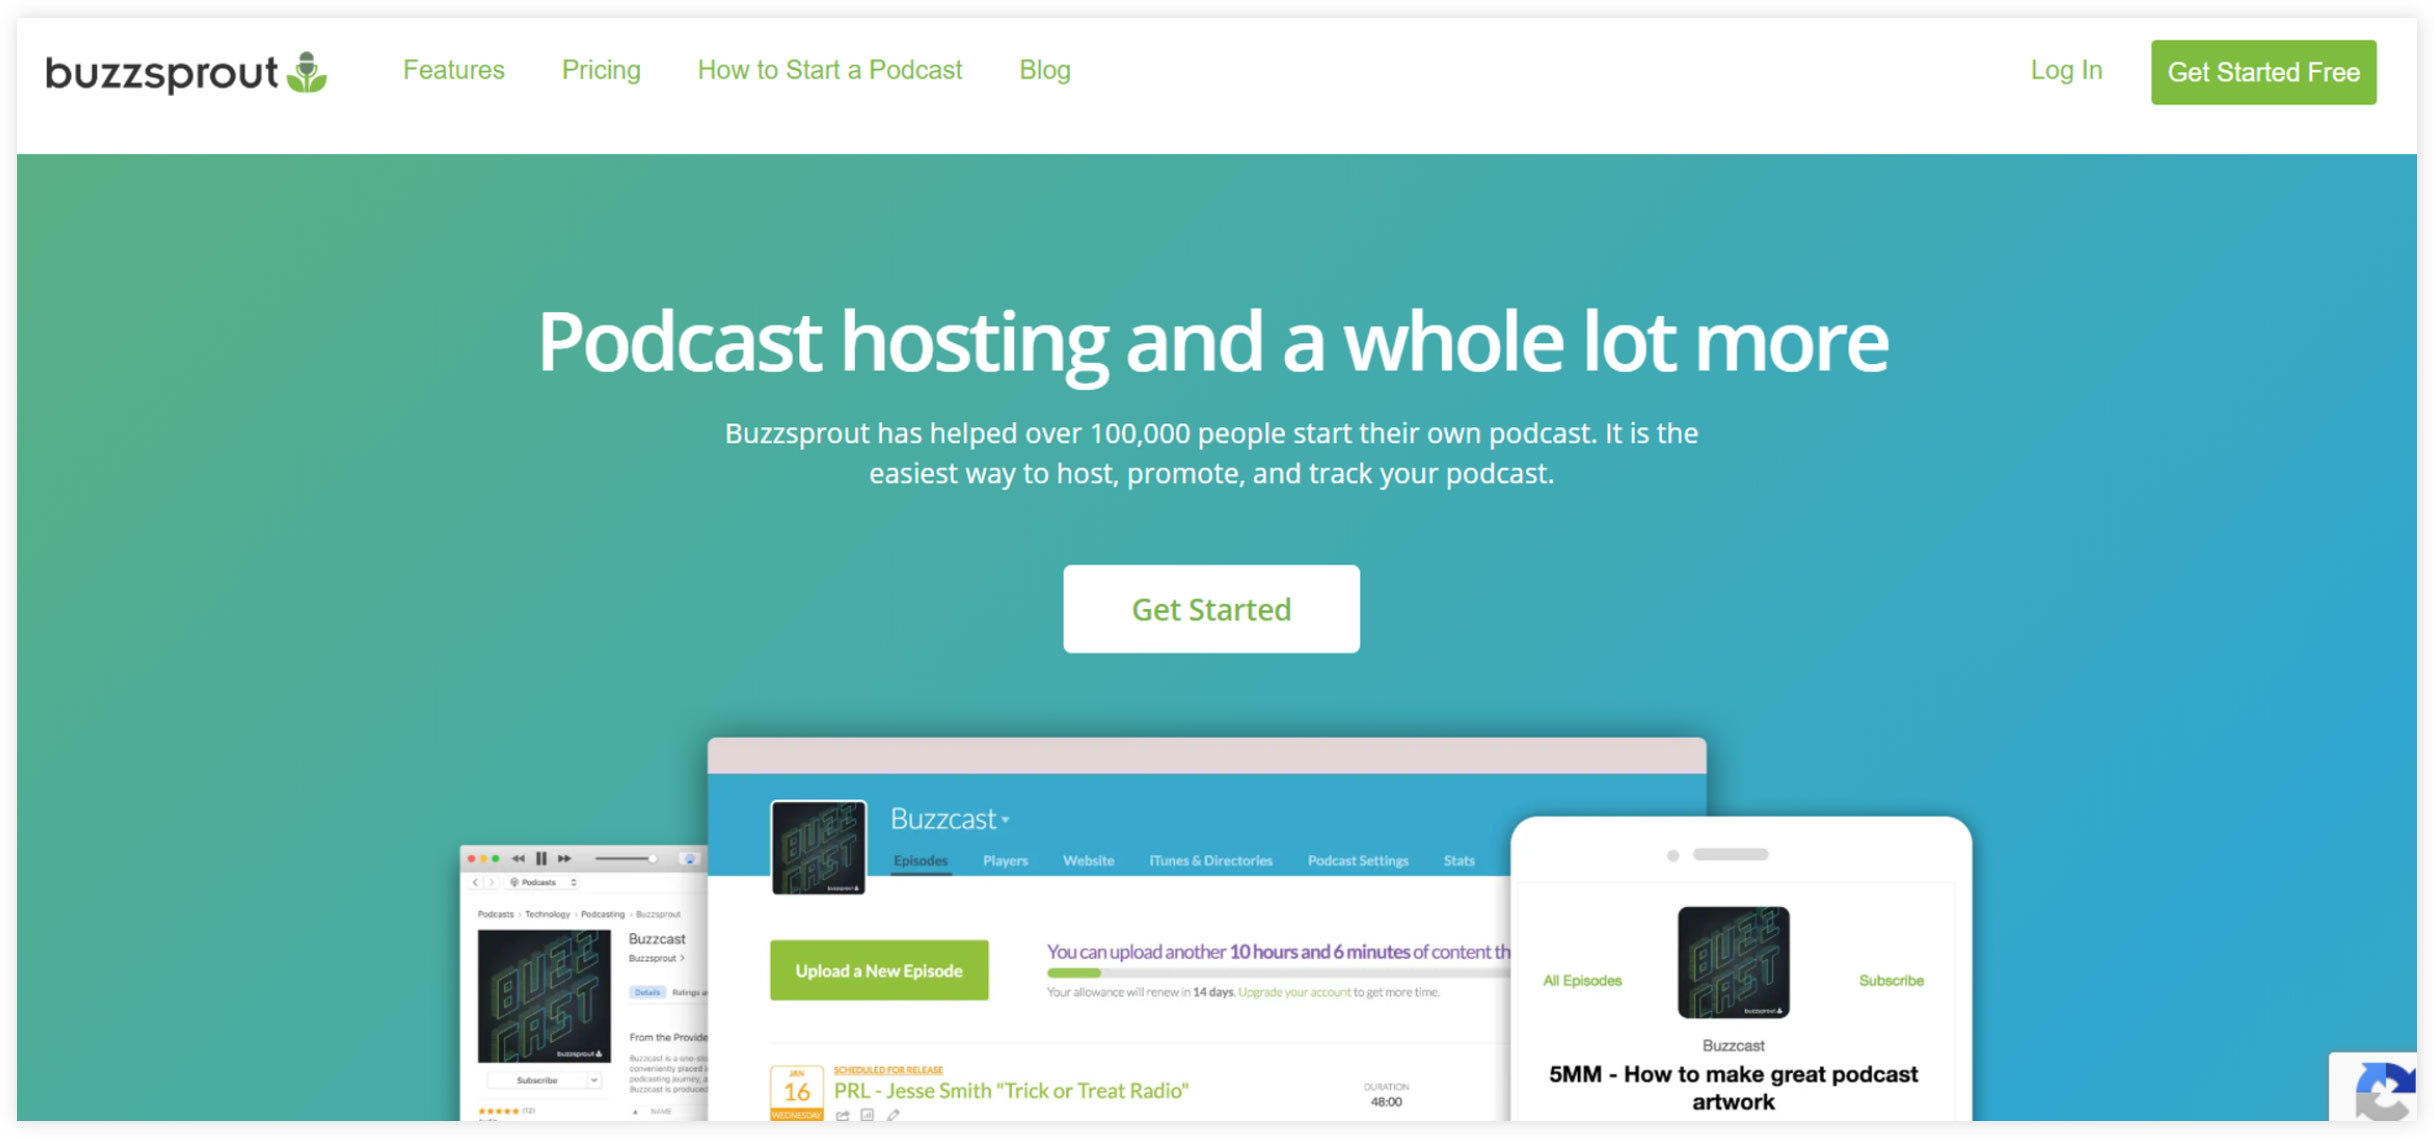 Buzsprout Podcast Hosting Software